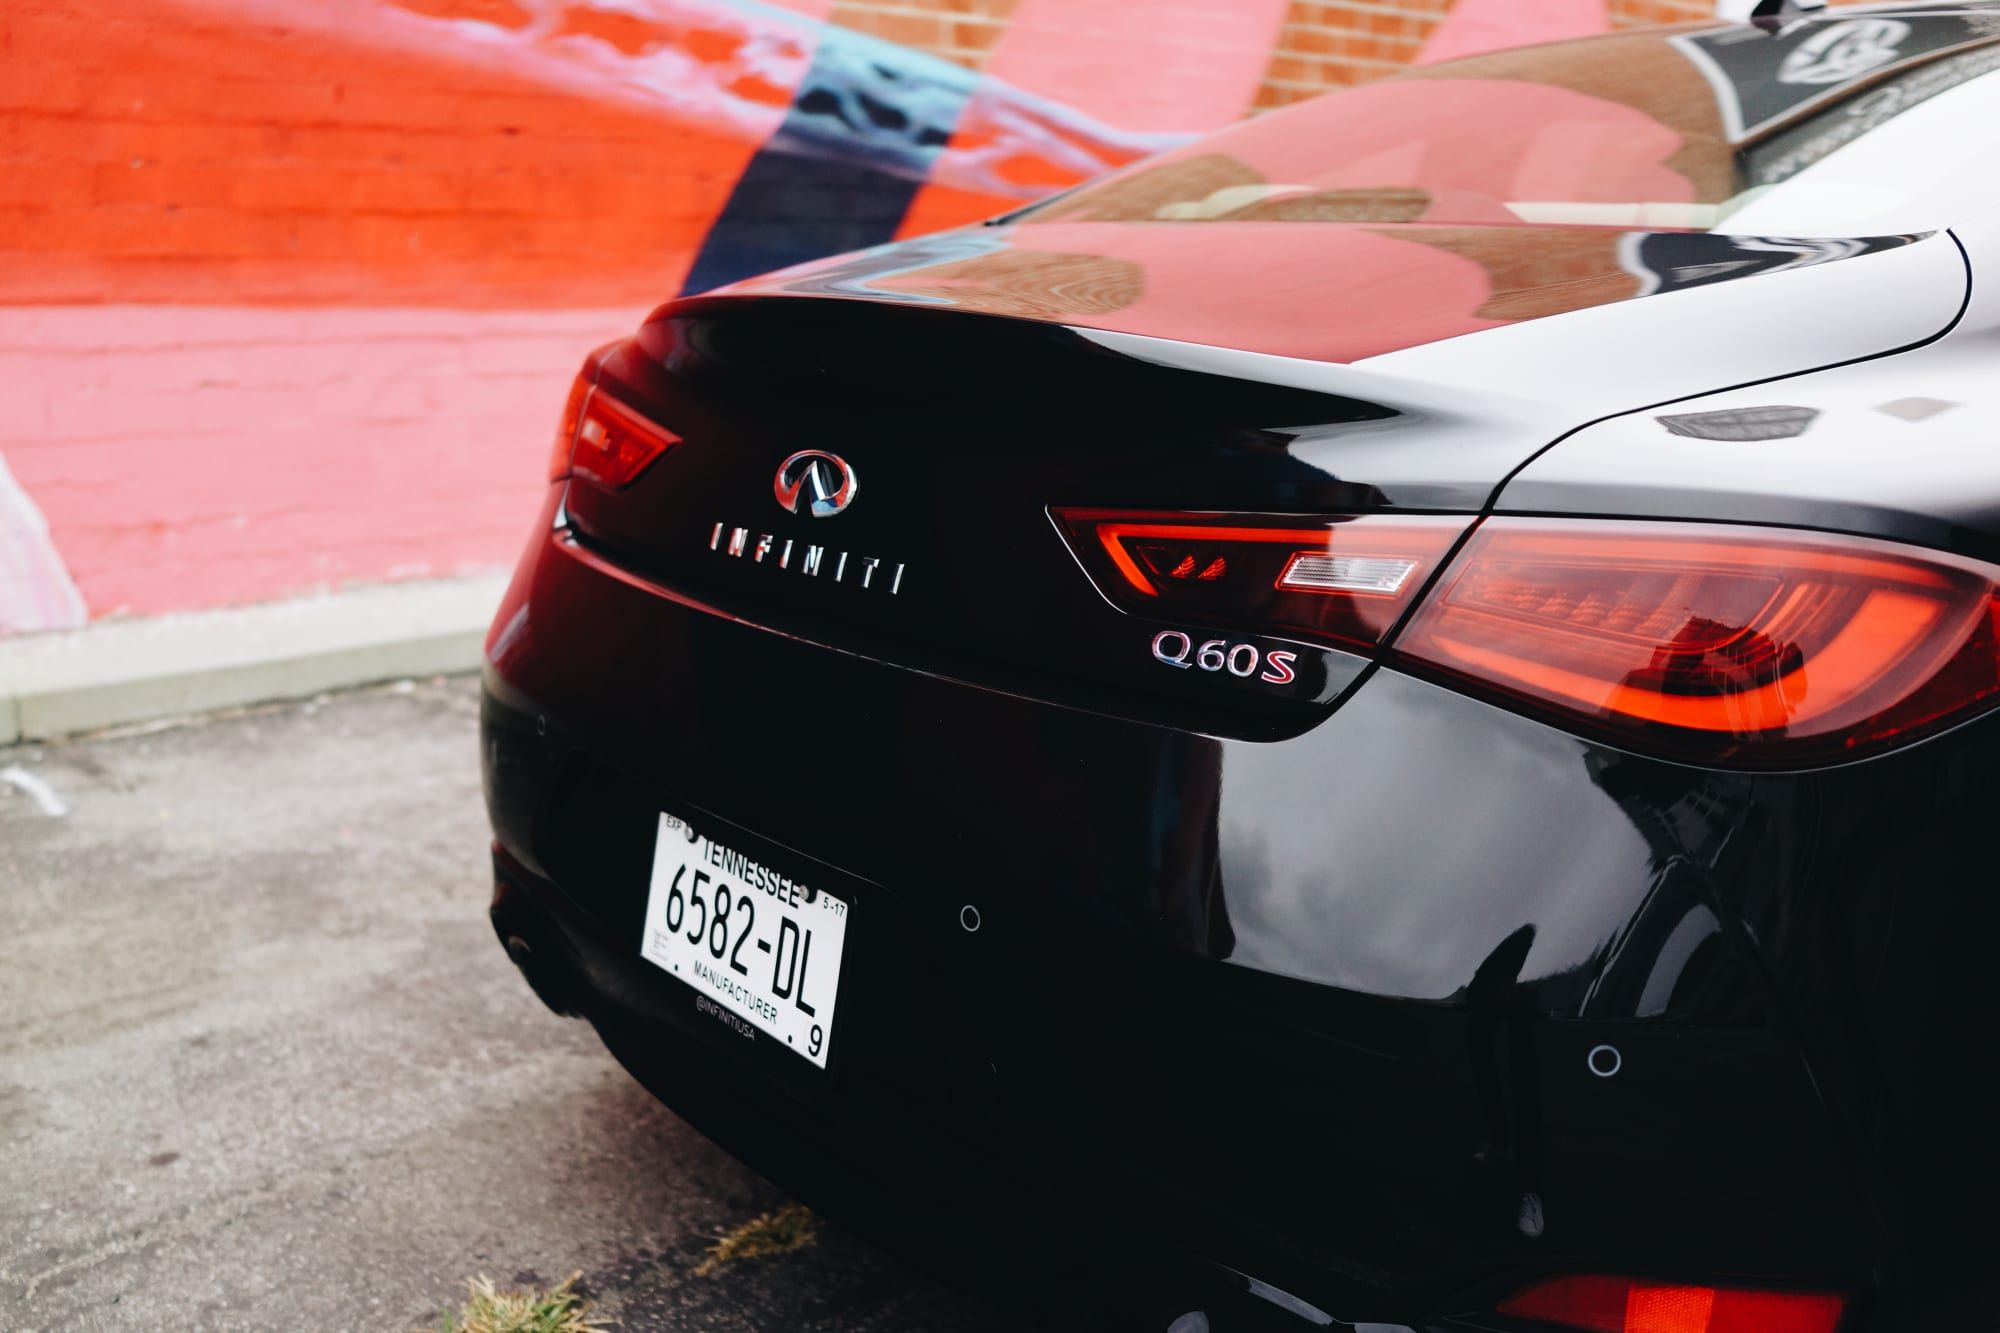 Infiniti's Q60 Red Sport points their performance line in